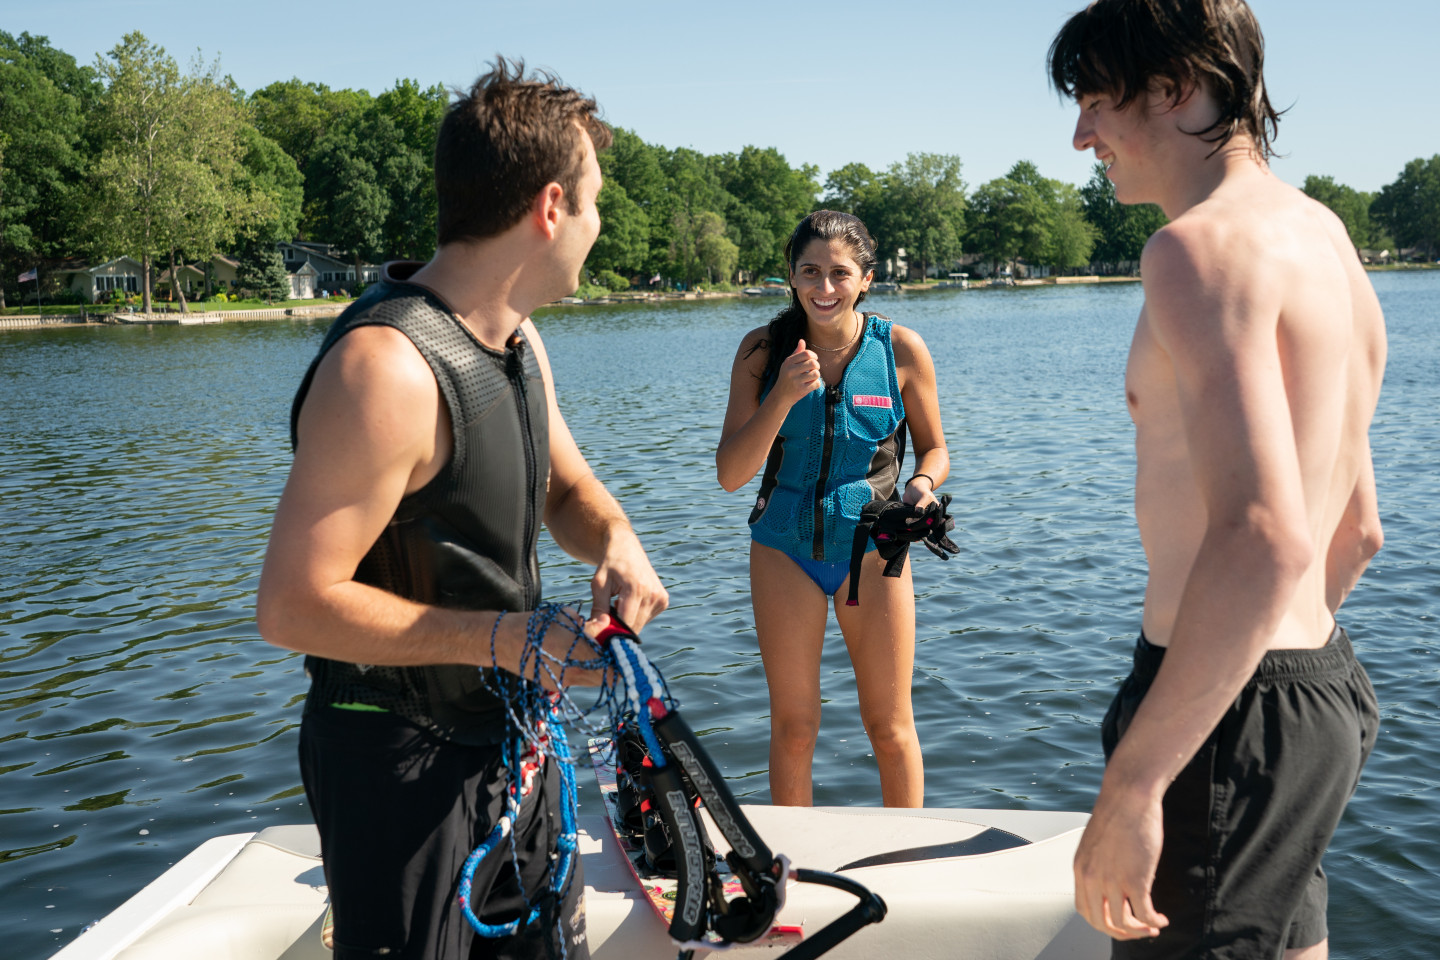 Three people in swimsuits stand by the water.